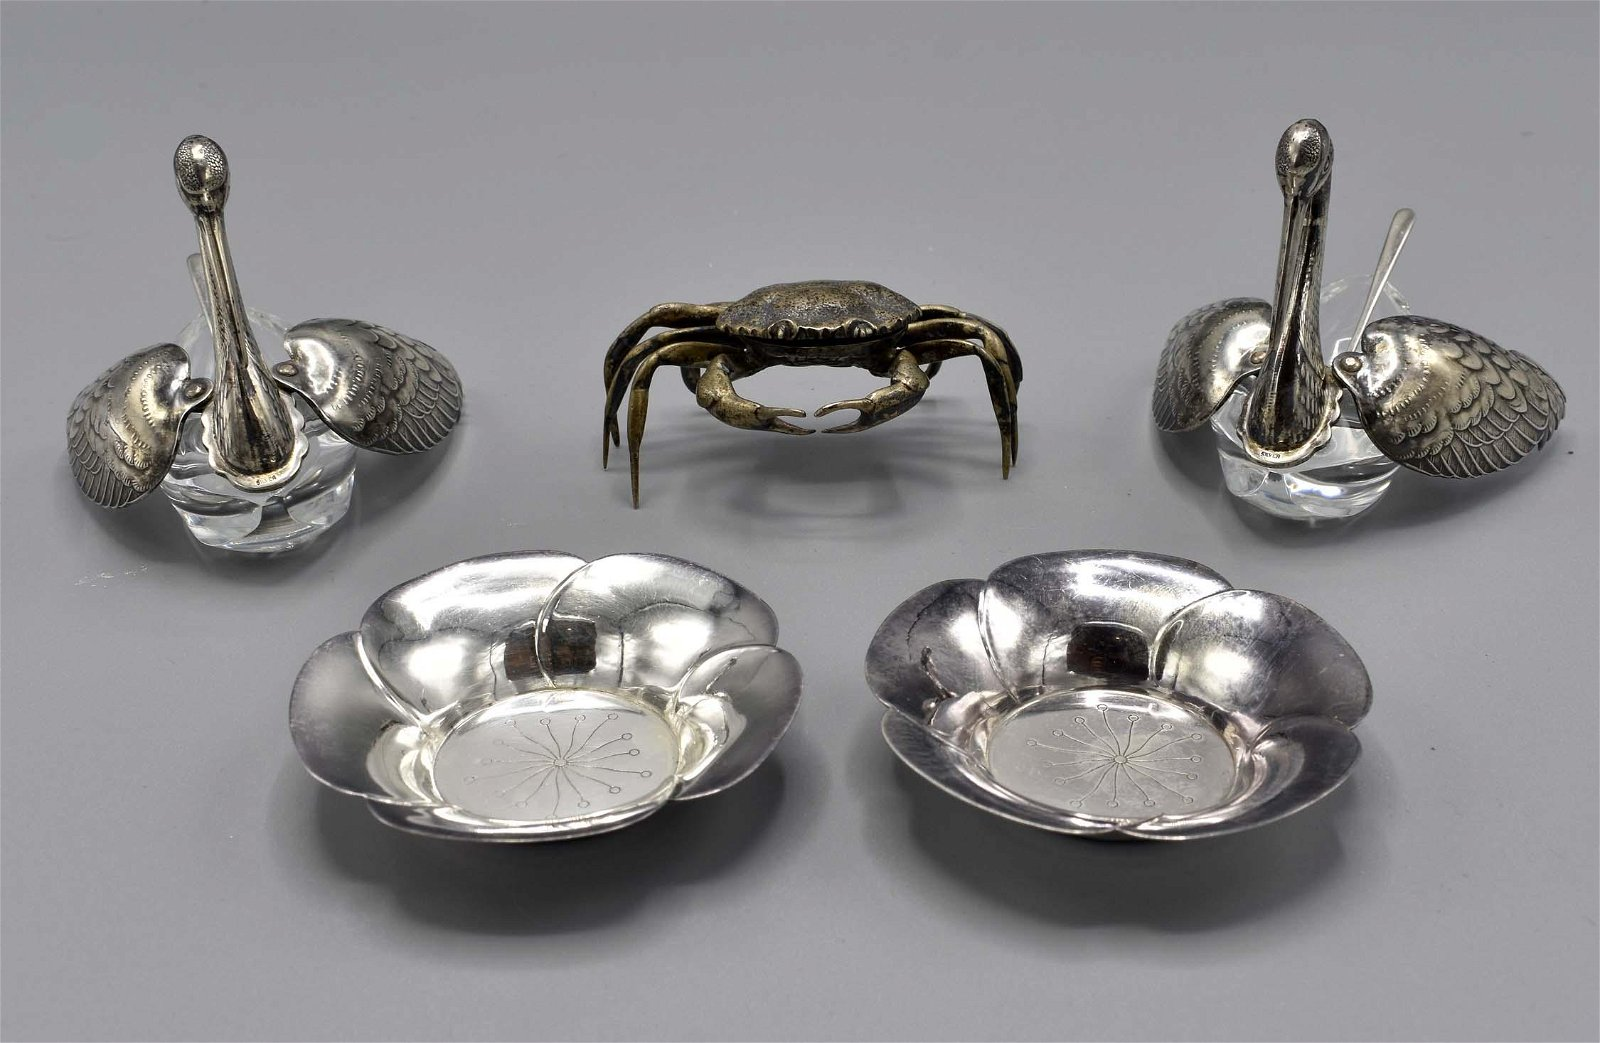 GROUP OF JAPANESE SILVER TABLE ITEMS